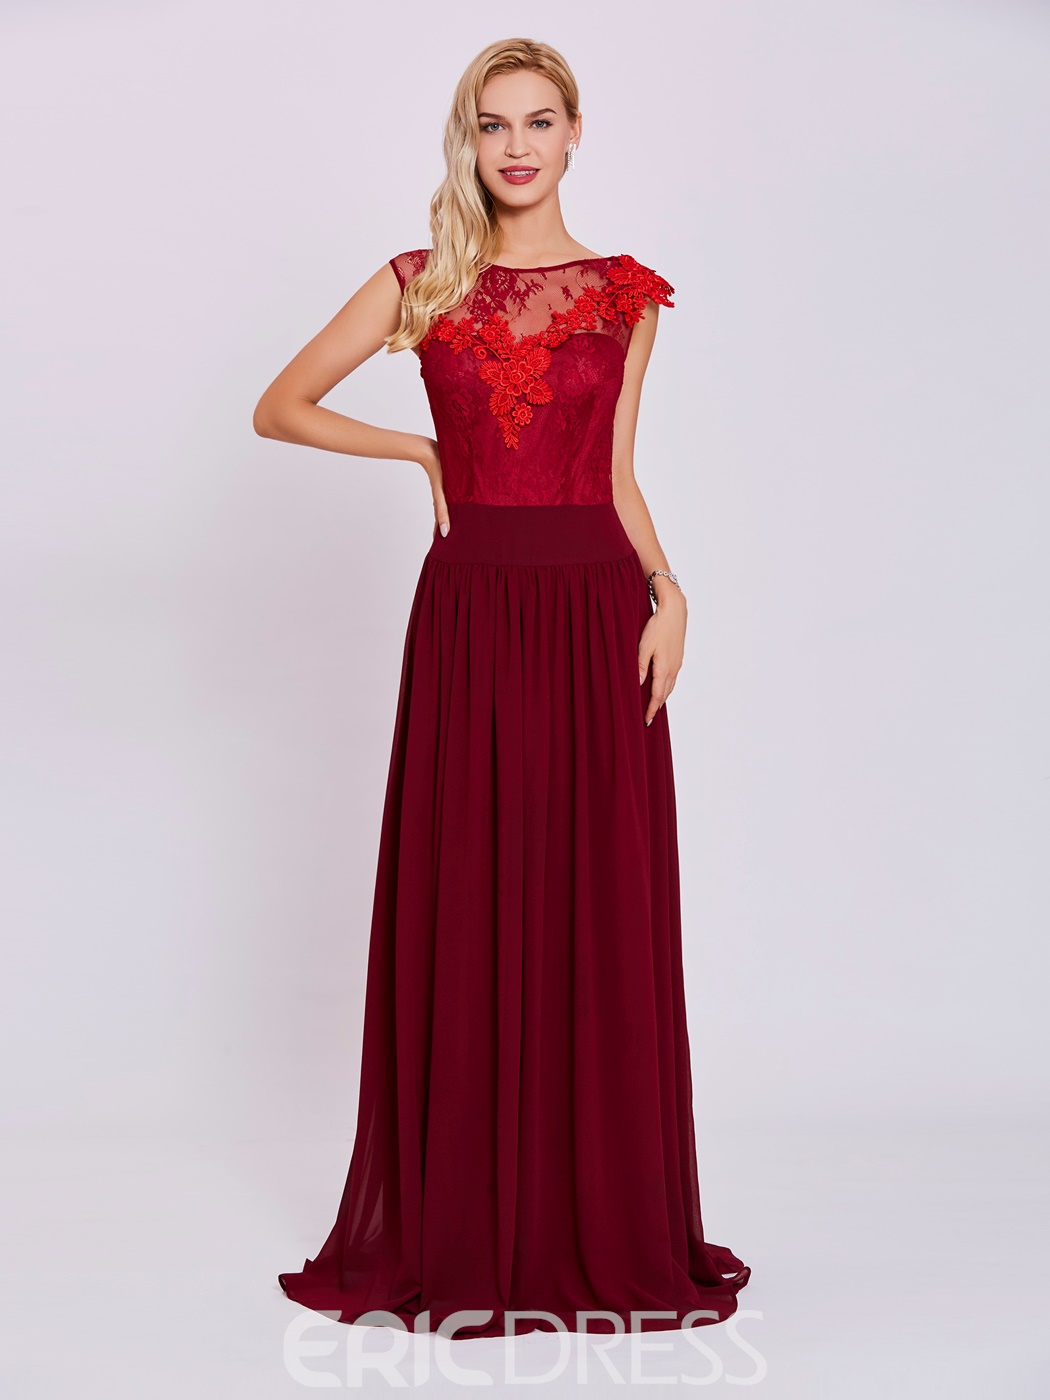 Ericdress Scoop Neck Zipper-Up Appliques A Line Evening Dress